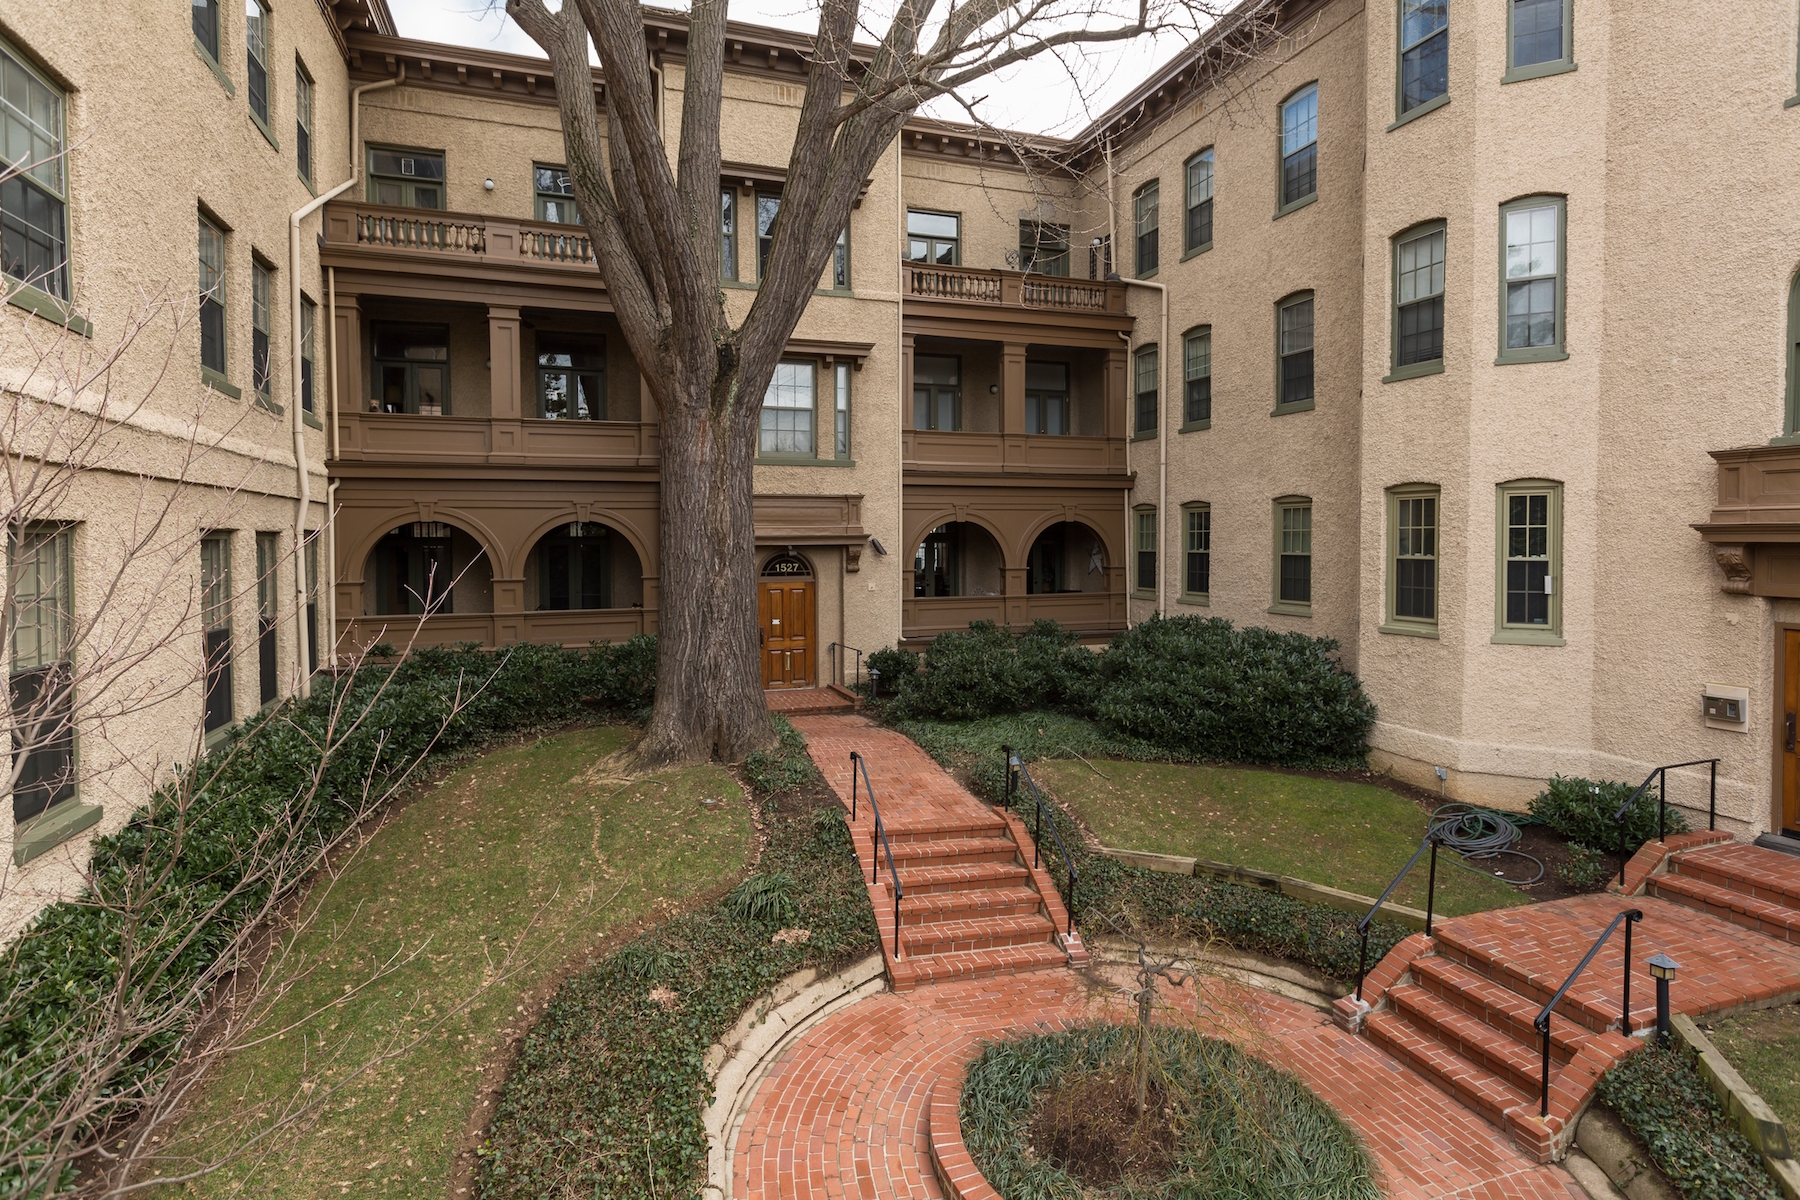 Additional photo for property listing at Rarely Available: Historic Georgetown Condominium 1527 30th Street Nw B21 Washington, 哥倫比亞特區 20007 美國